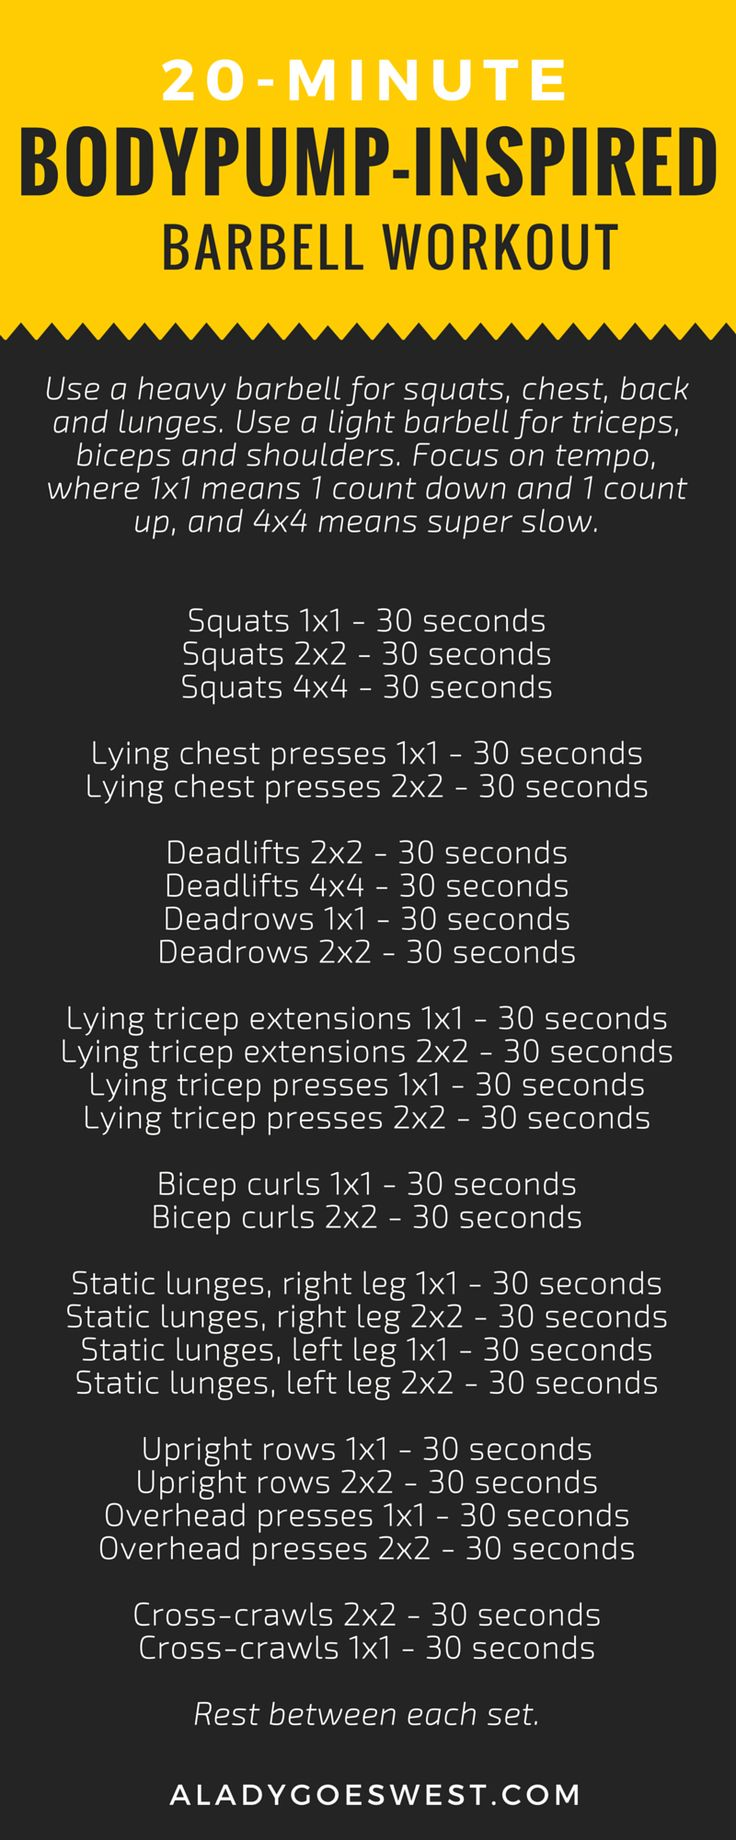 Bodypump-inspired barbell workout via A Lady Goes West